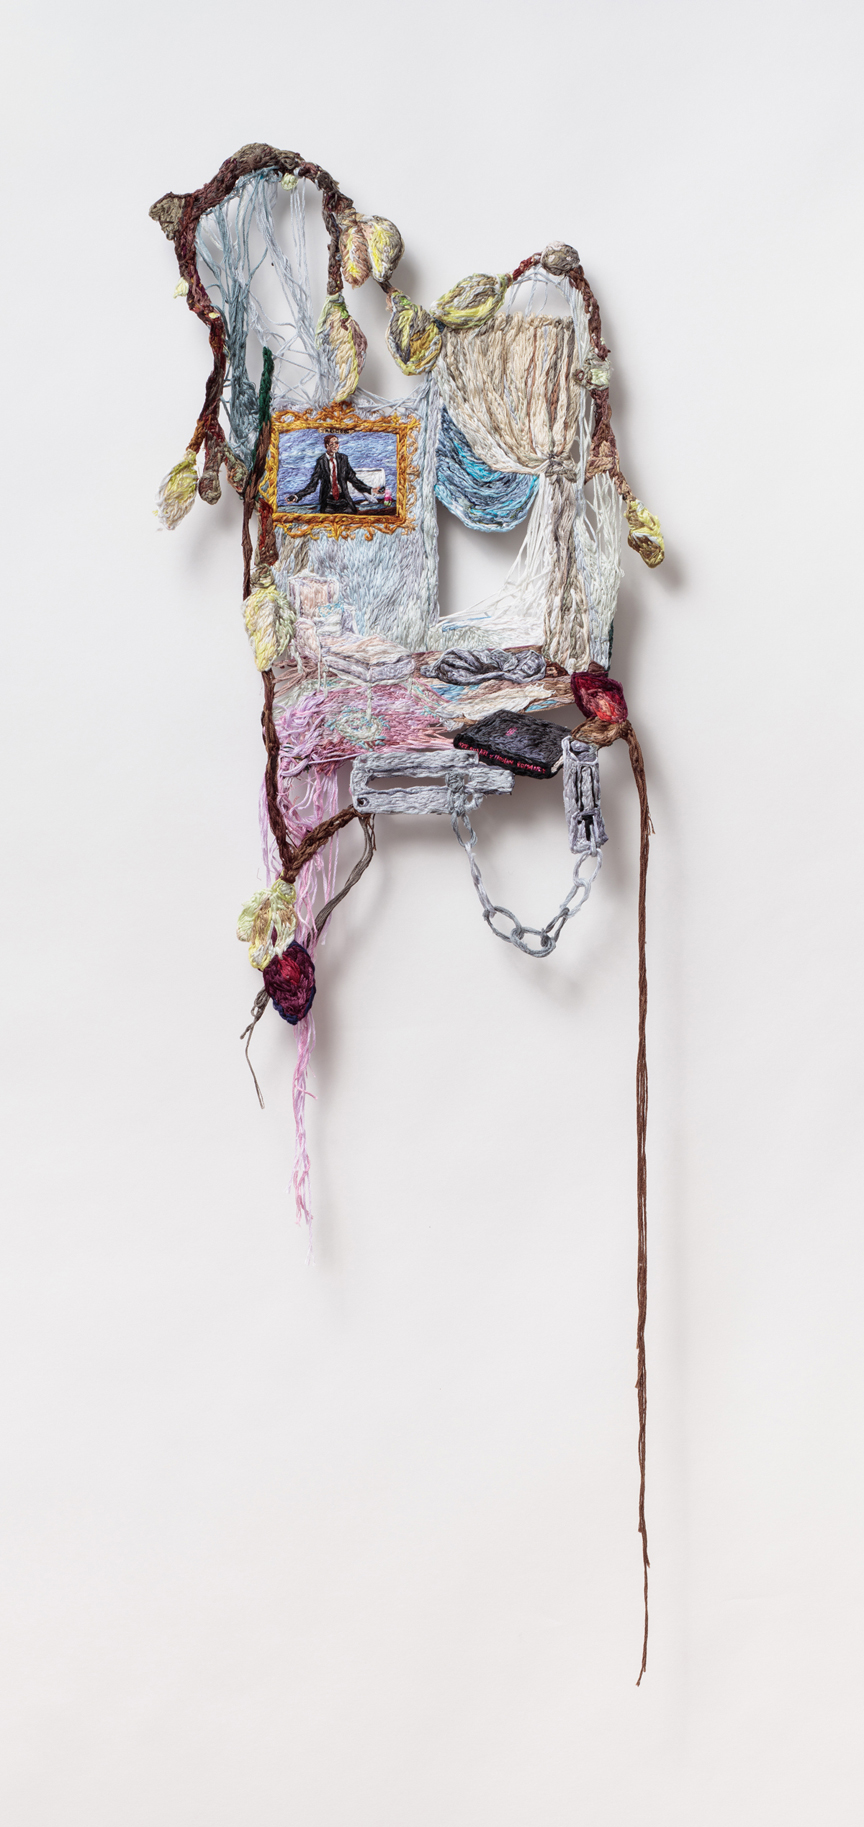 I Can't Stop Crying Except Sometimes When I Think About Ari Gold  , 2016, Embroidery Thread and Fabric, 34 x 12 in